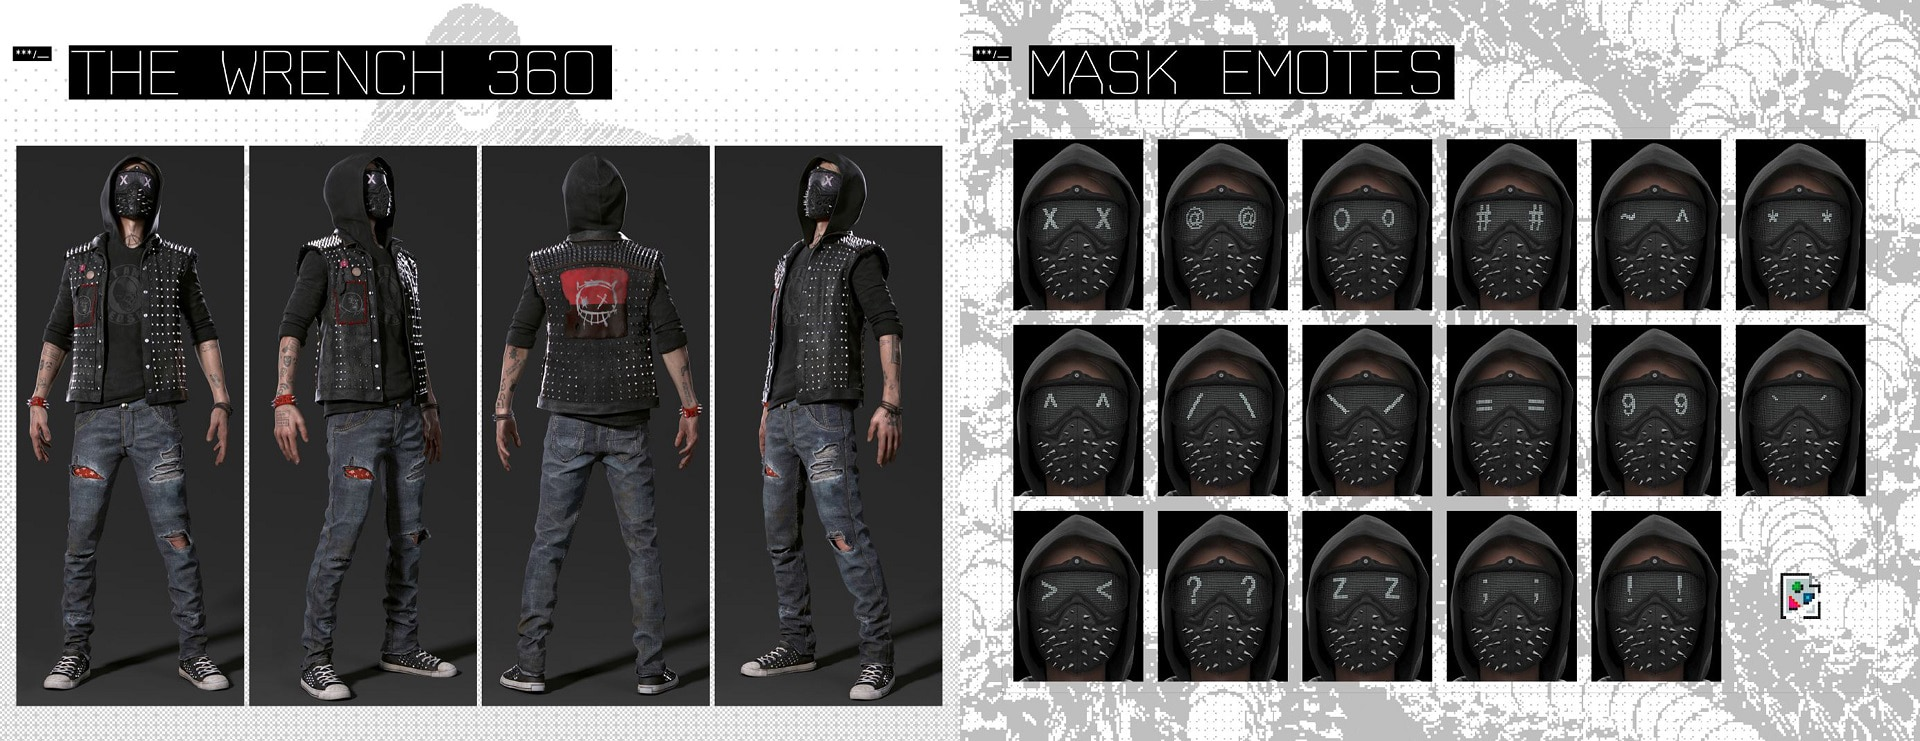 Where To Get Wrenches Outfit In Watch Dogs